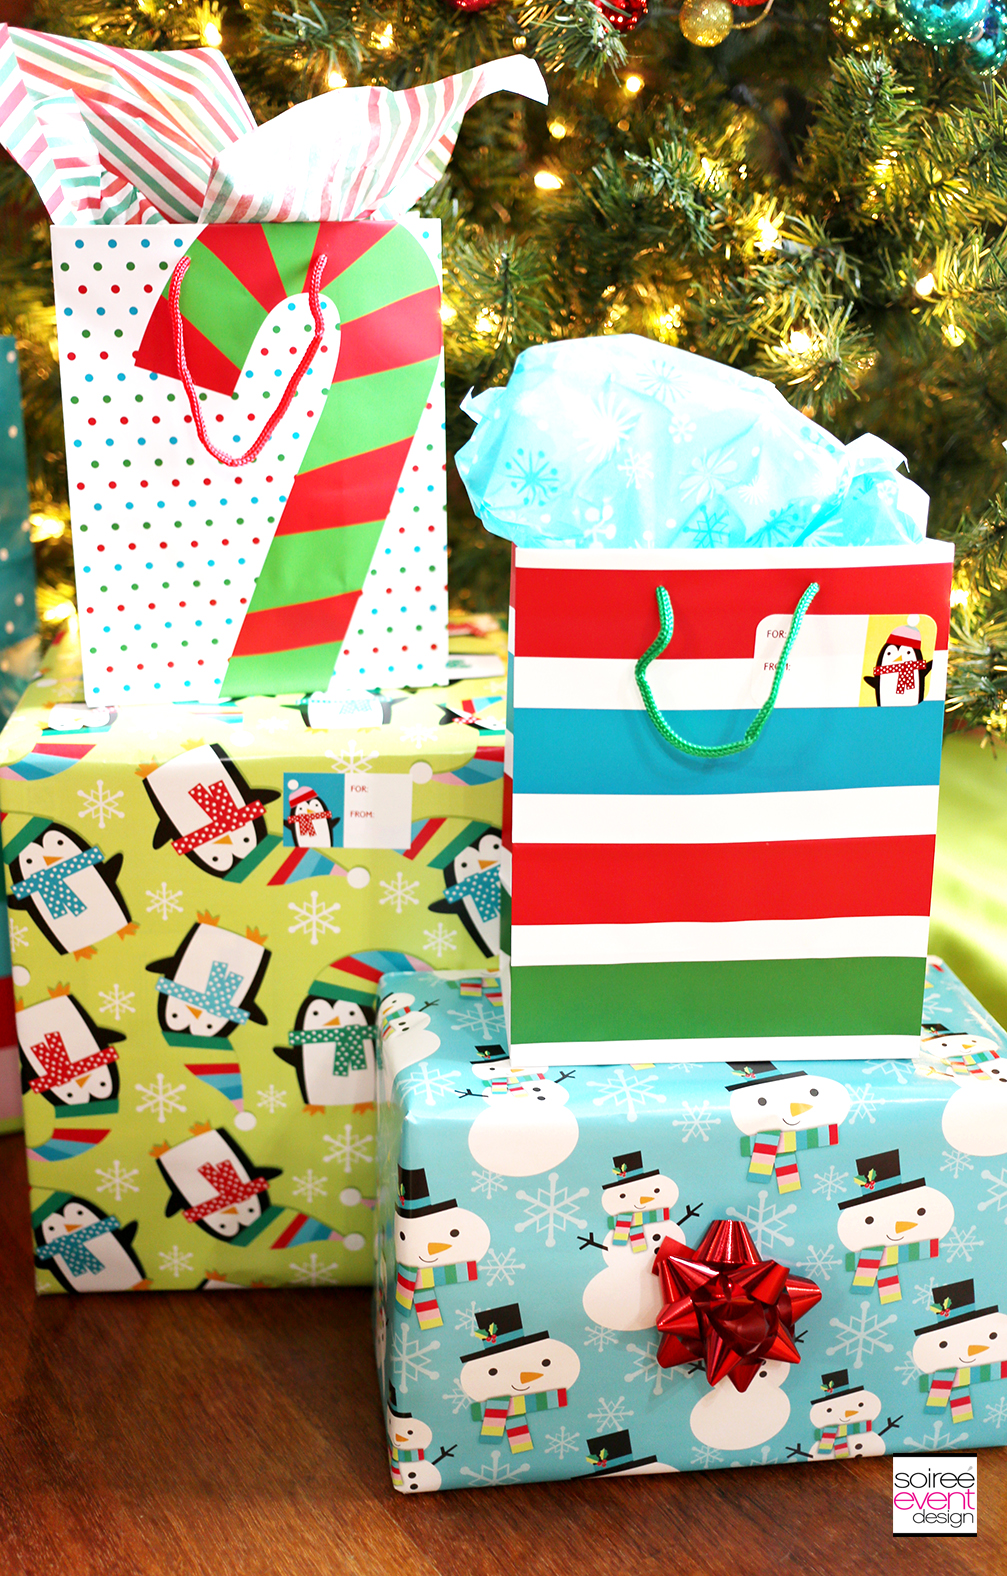 Christmas Gift Wrapping Tips - Colorful Gift Wrap